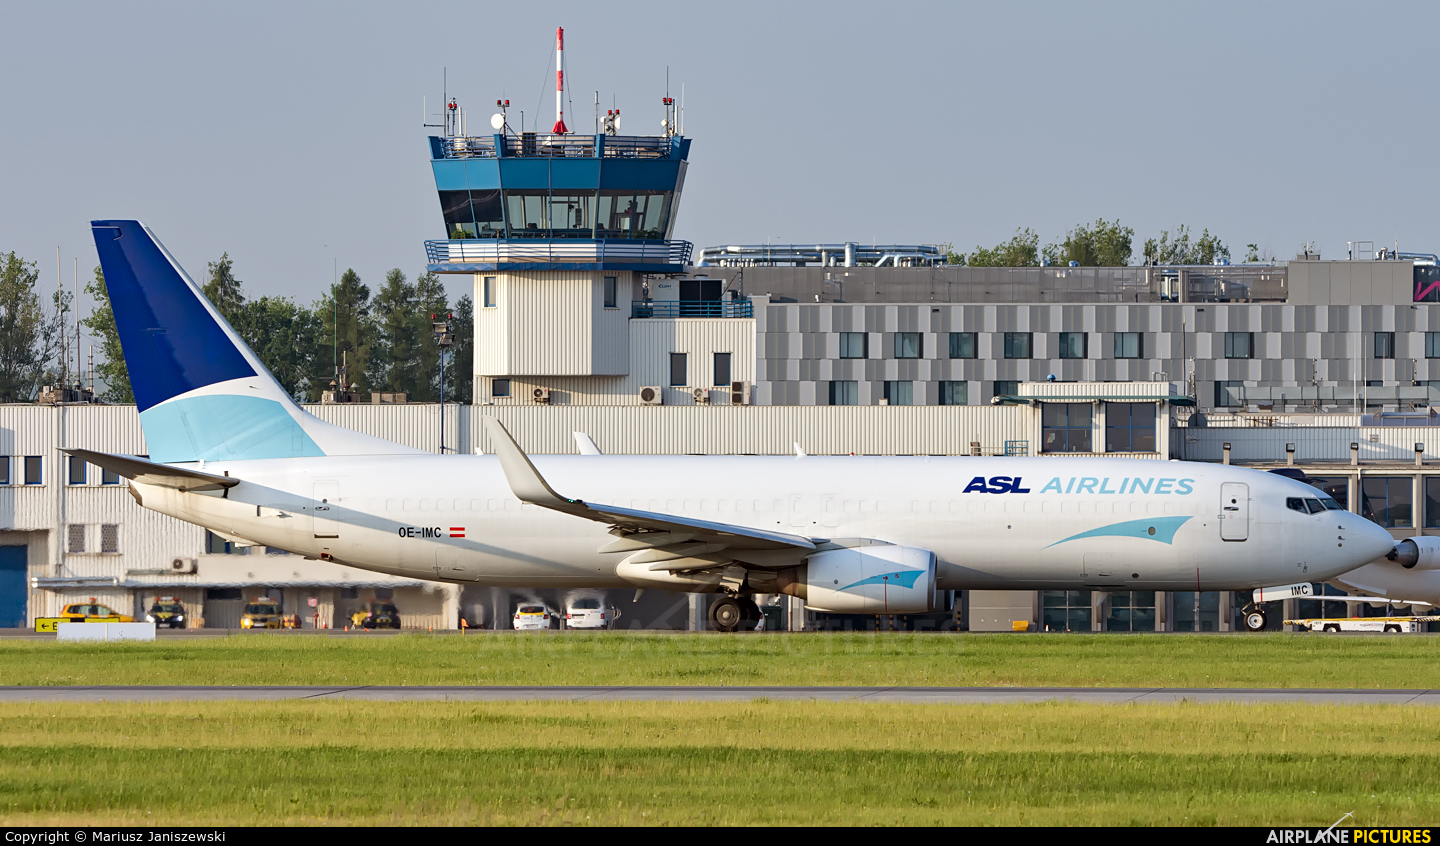 ASL Airlines OE-IMC aircraft at Katowice - Pyrzowice